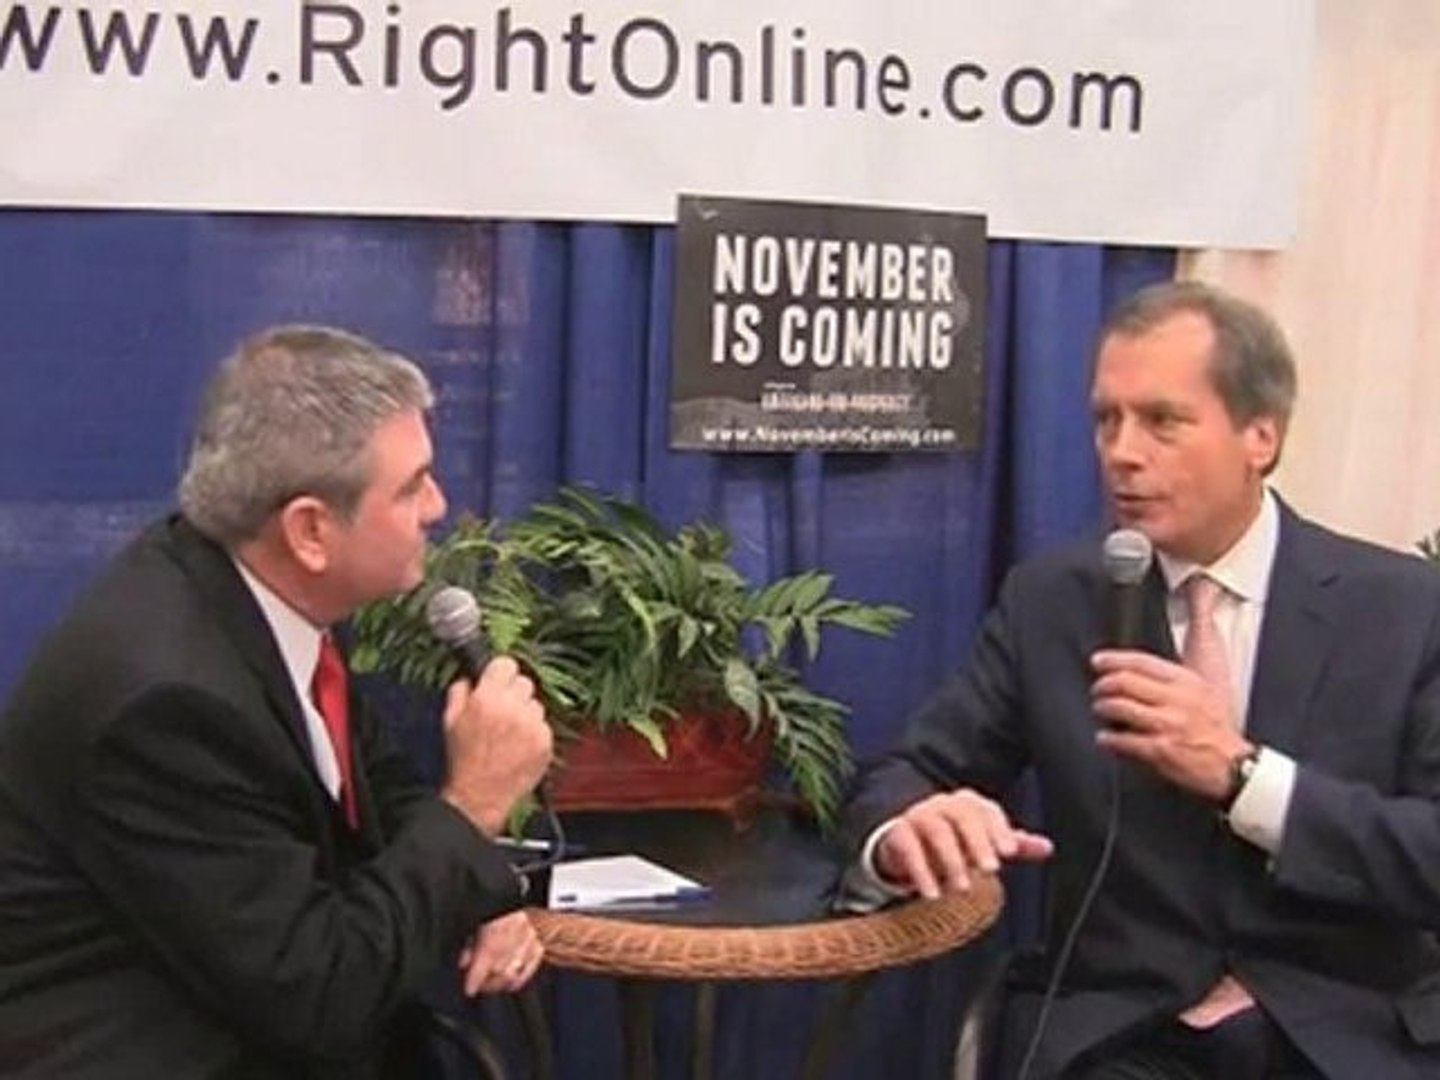 RightOnline Bloggers' Row: David Dewhurst - Part 1